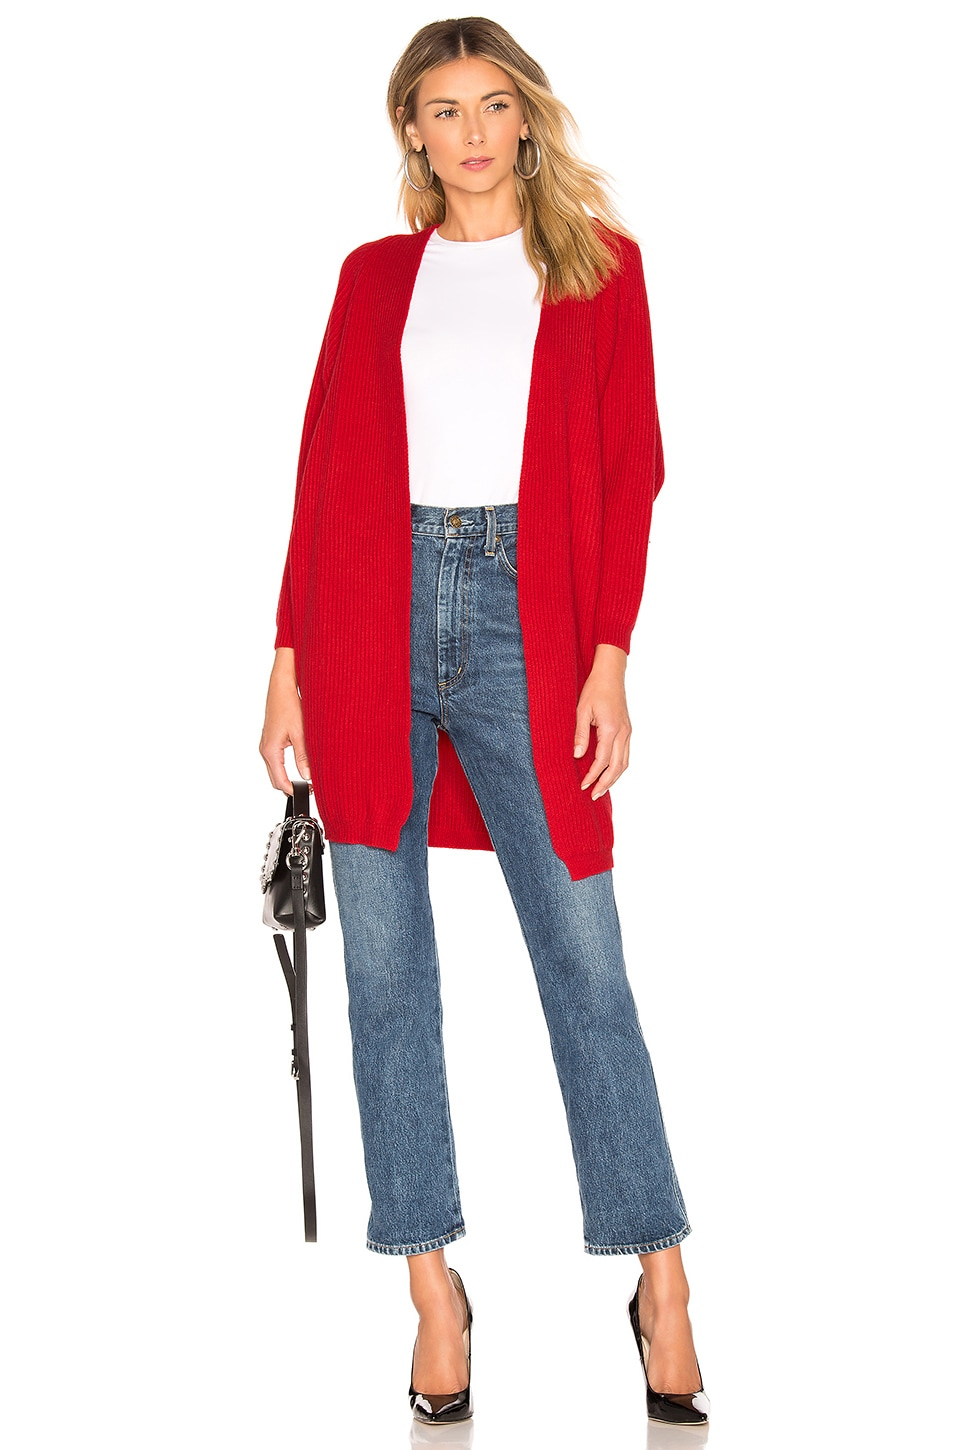 Lovers + Friends Ribbed Cardigan in Deep Red